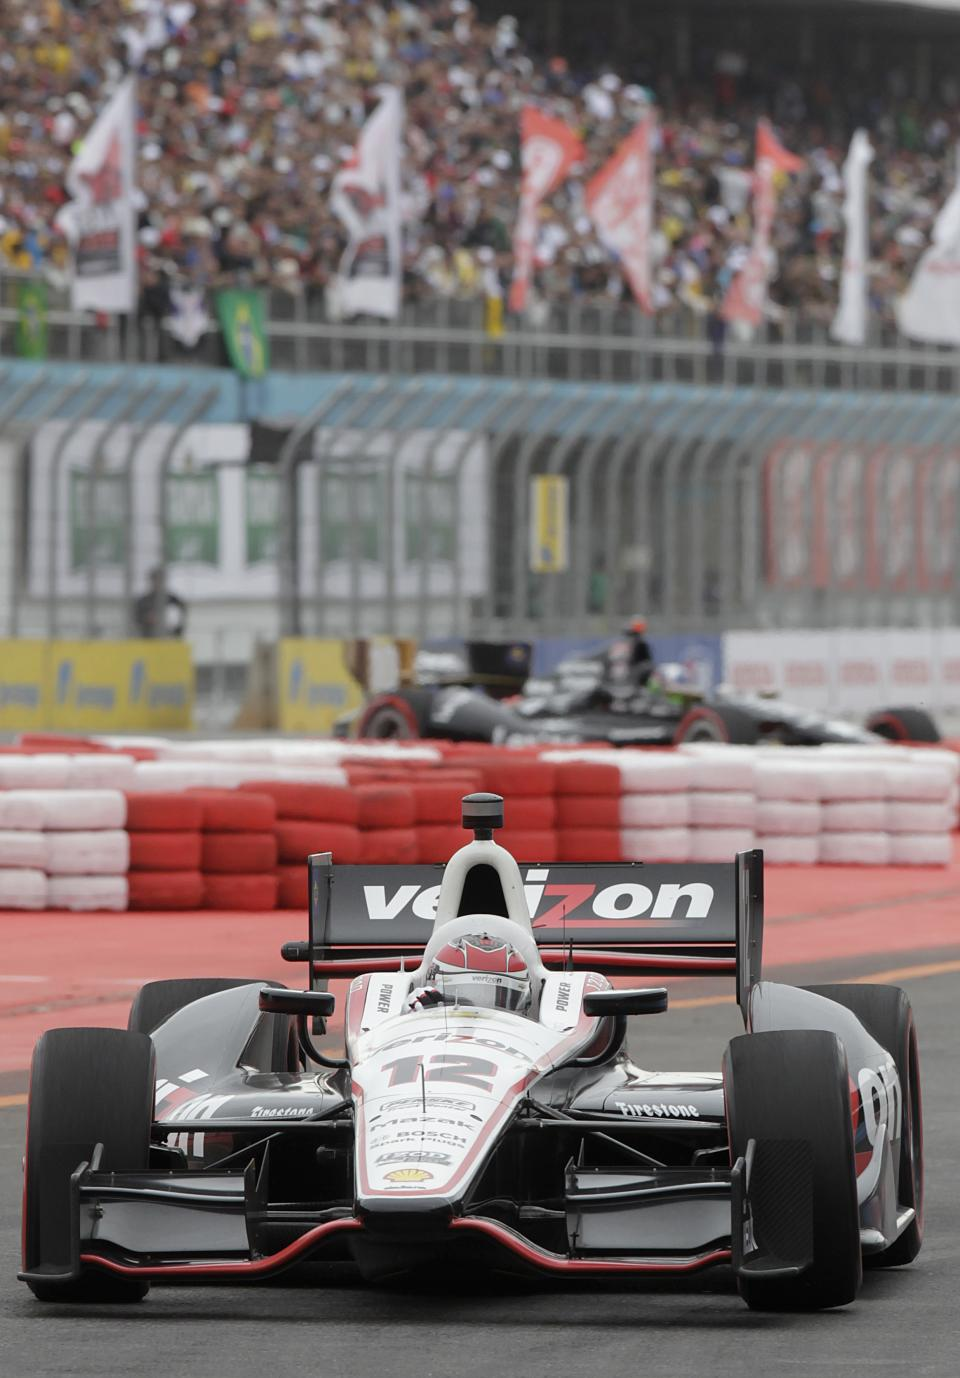 IndyCar driver Will Power, of Australia steers his car on the IndyCar's Sao Paulo 300 track, in Sao Paulo, Brazil, Sunday, April 29, 2012.  (AP Photo/Andre Penner)